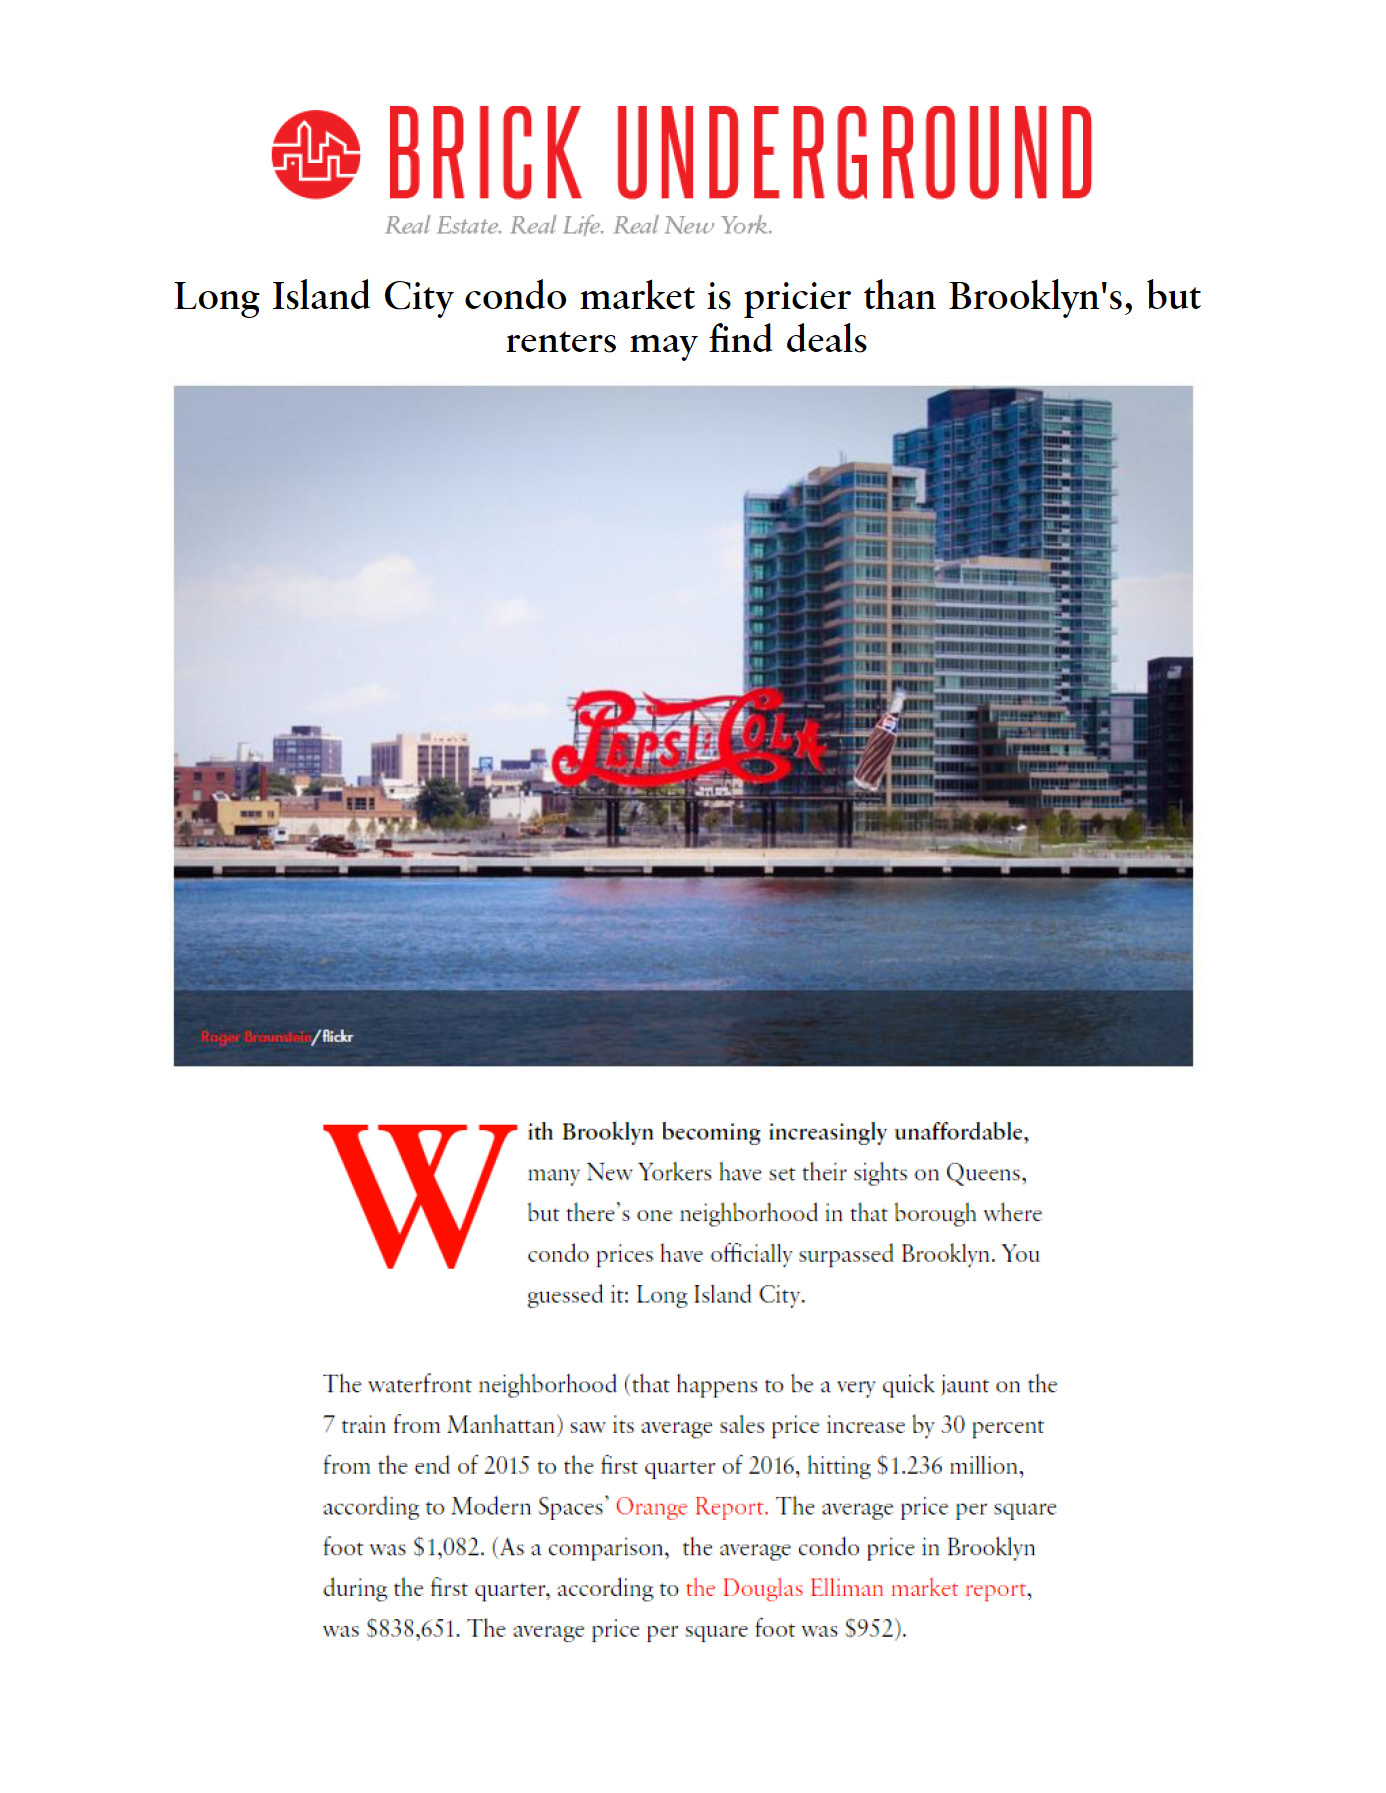 Brick Underground - Long Island City Condo Market is Pricier than Brooklyn's, but Renters May Find Deals 4.21.16 (1)_Page_1